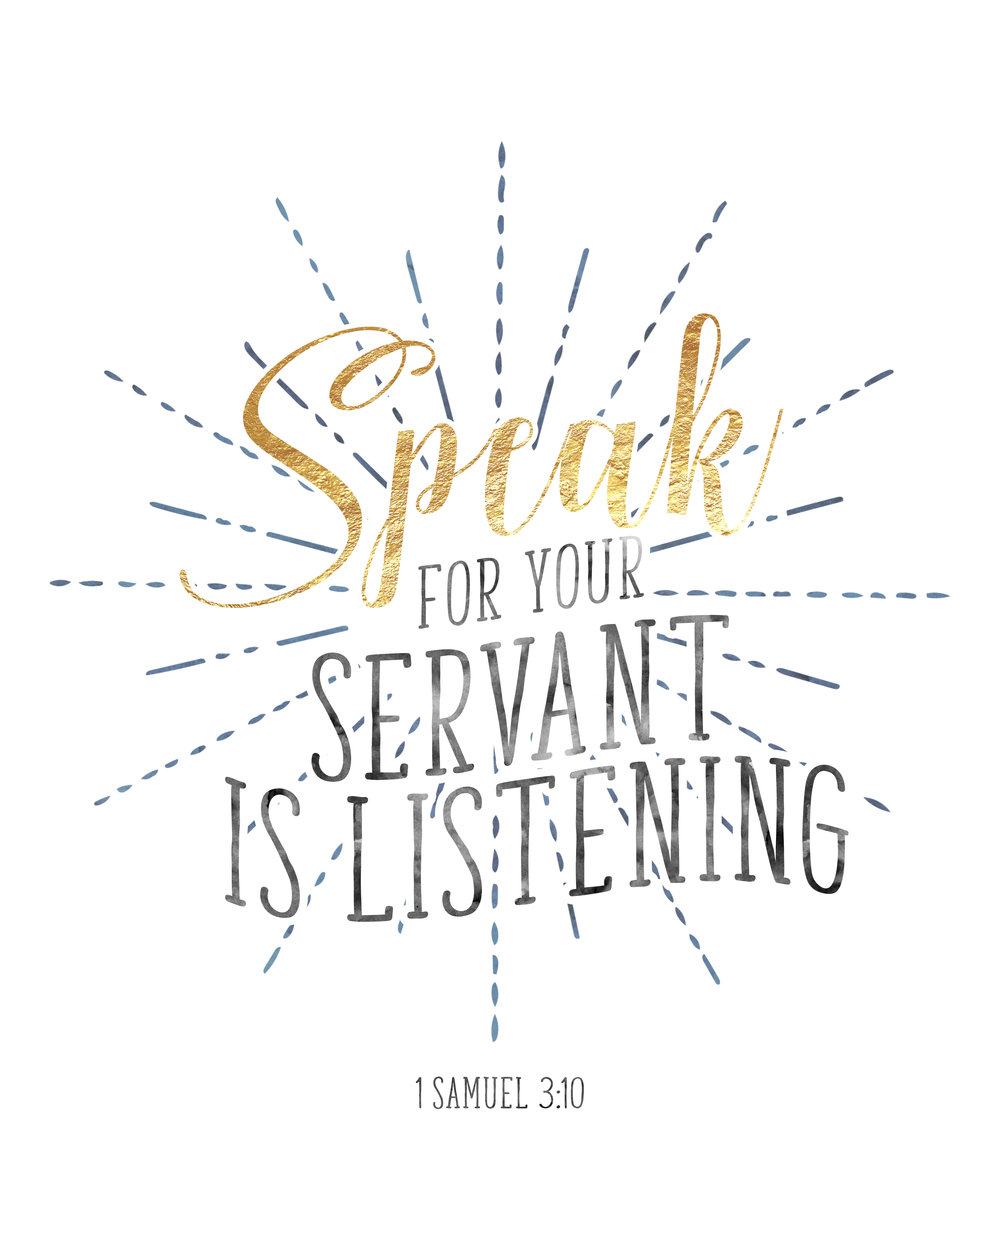 Speak for your servant is listening.jpg